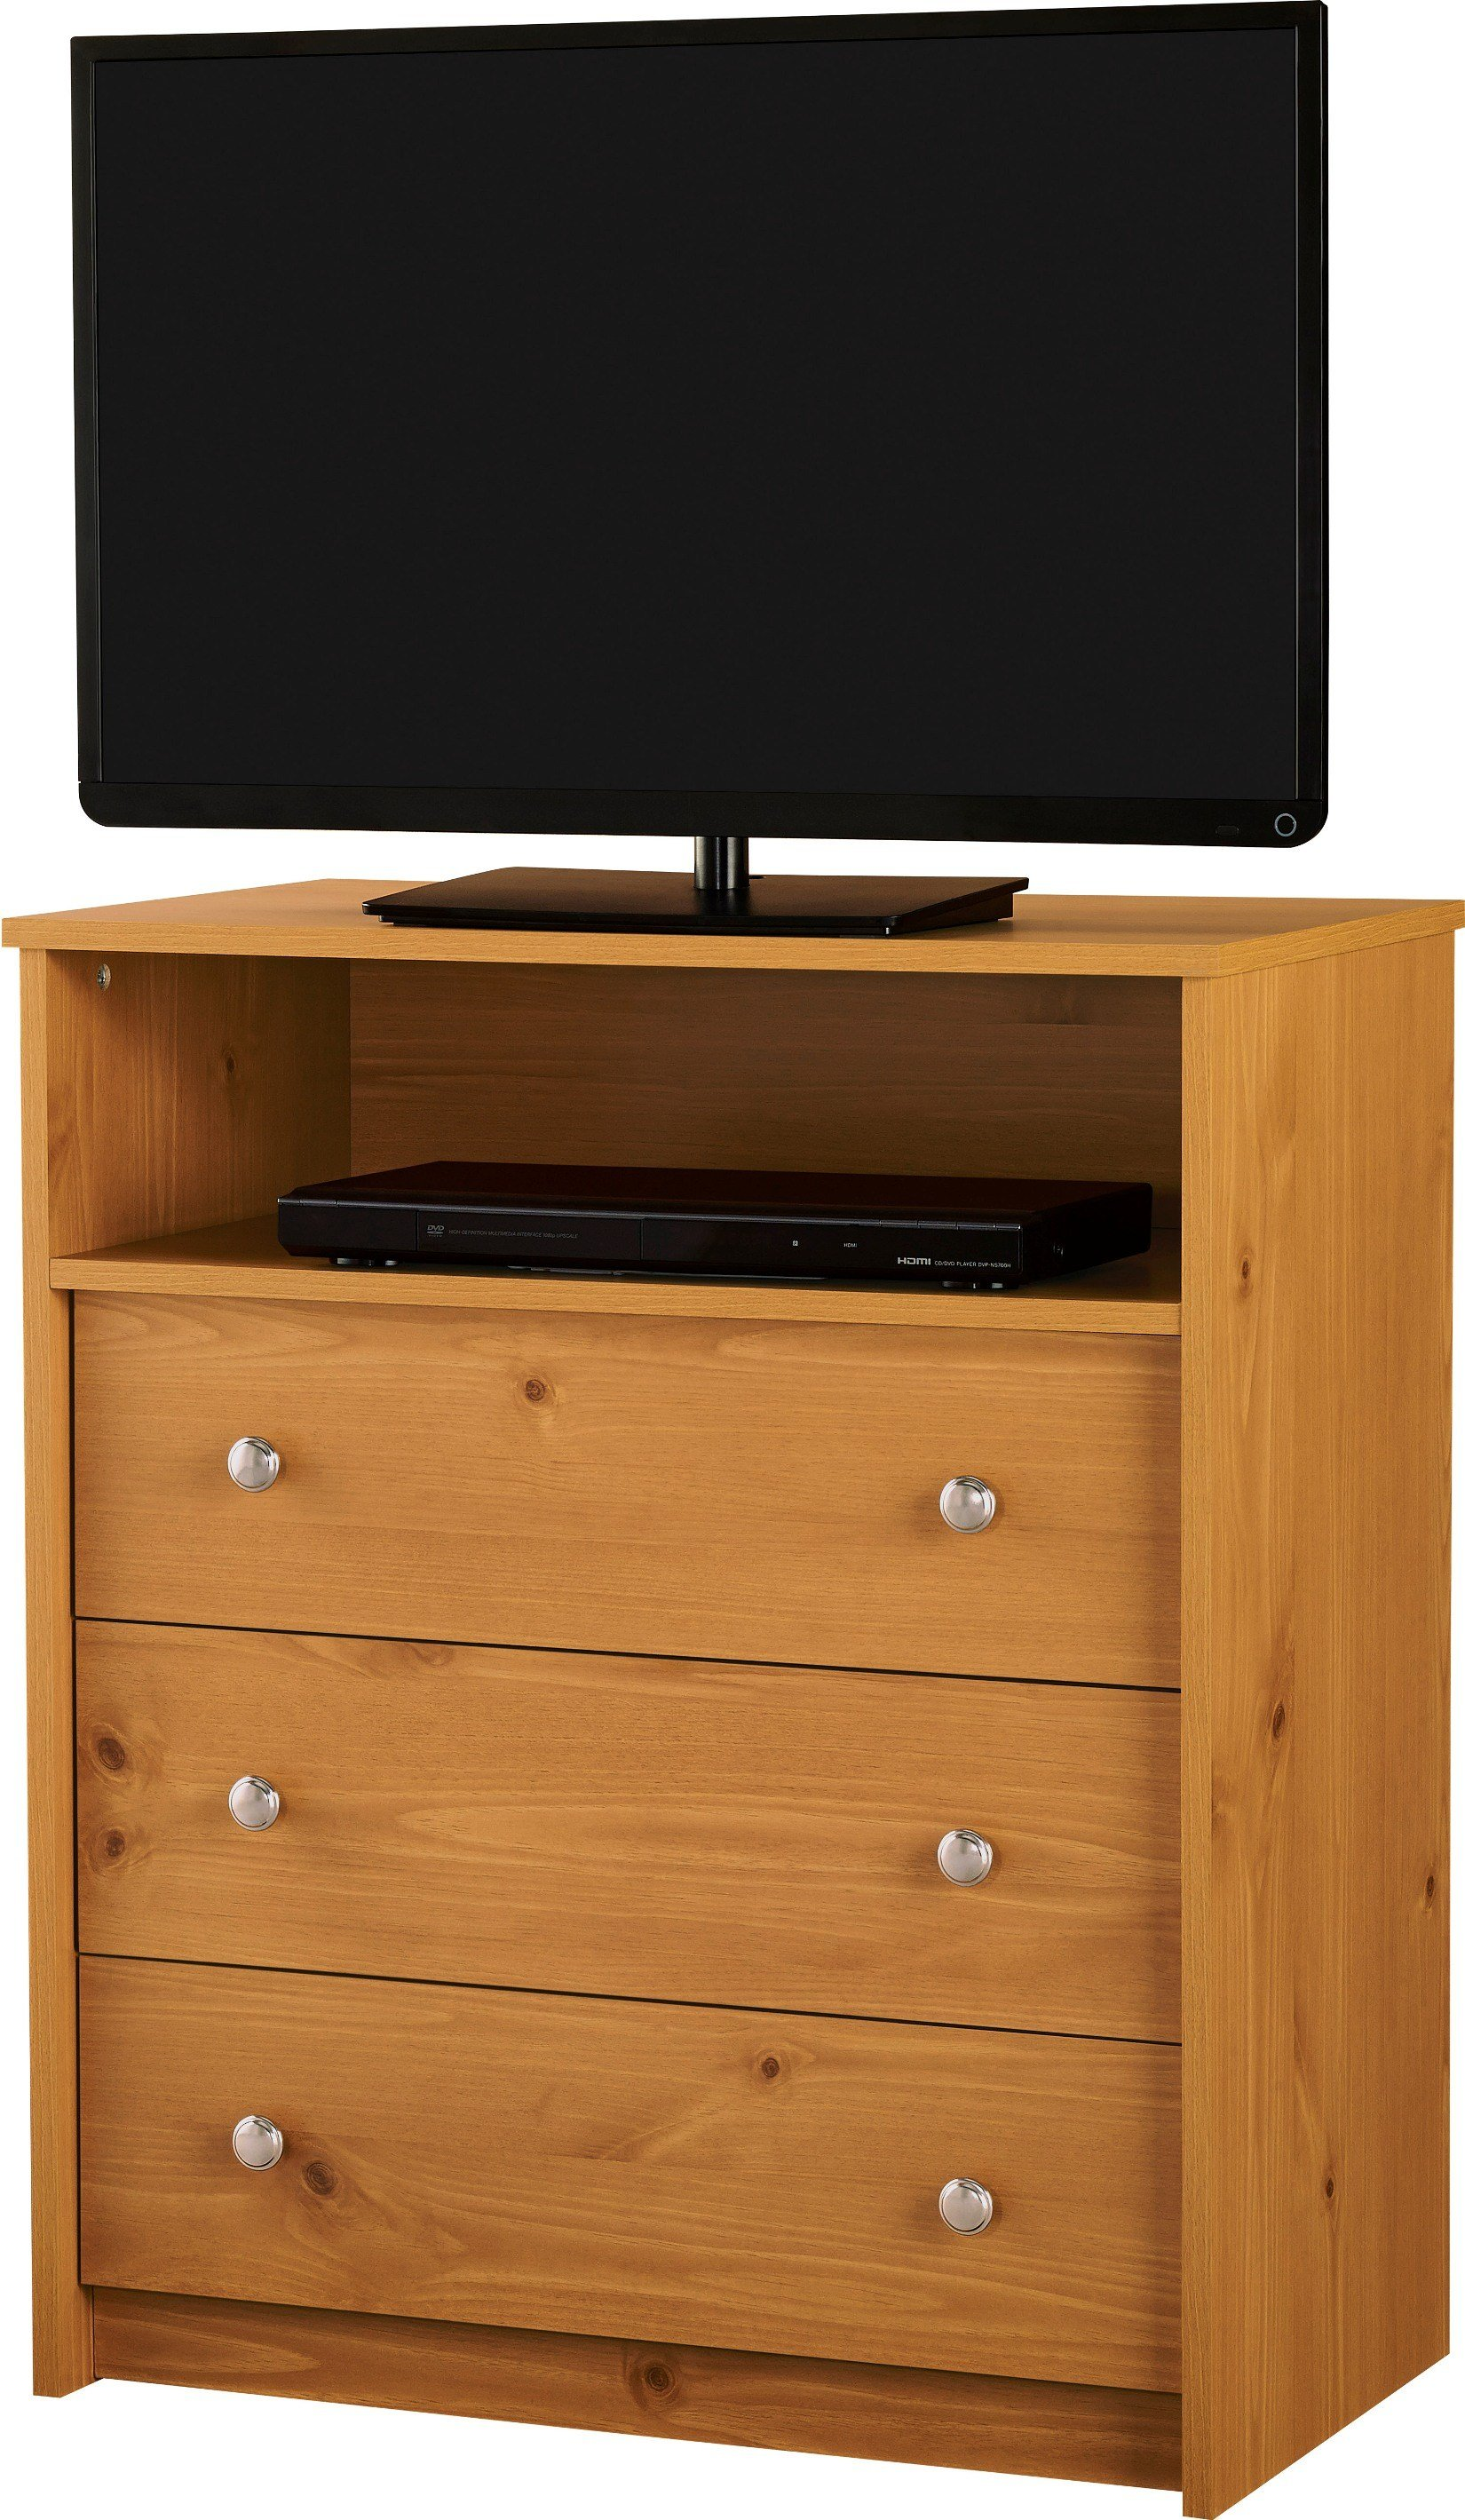 Best Essential Home Belmont Highboy Tv Stand Pine Home Furniture Bedroom Furniture Dressers With Pictures